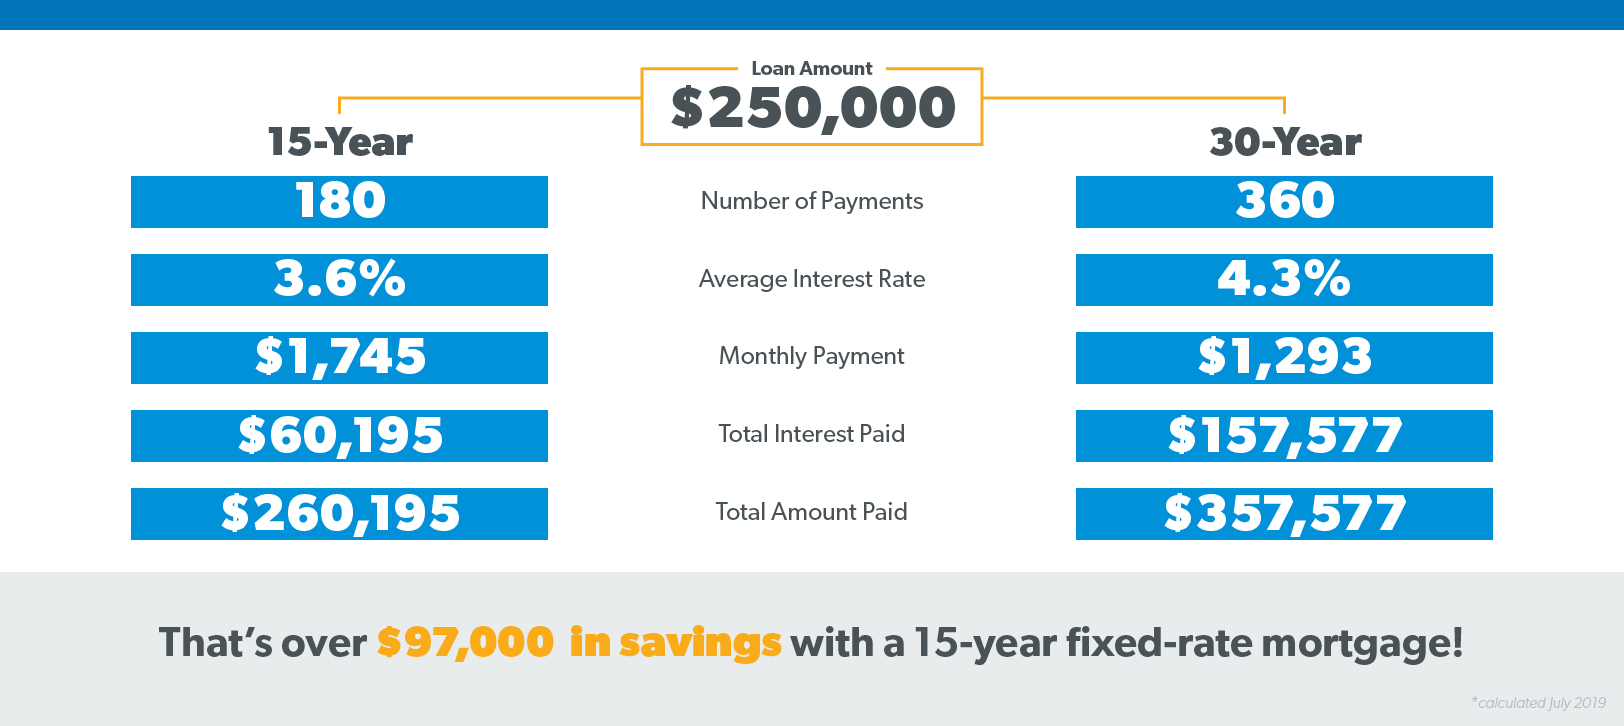 You could have over $130,000 in savings with a 15-year fixed-rate mortgage compared to a 30-year mortgage